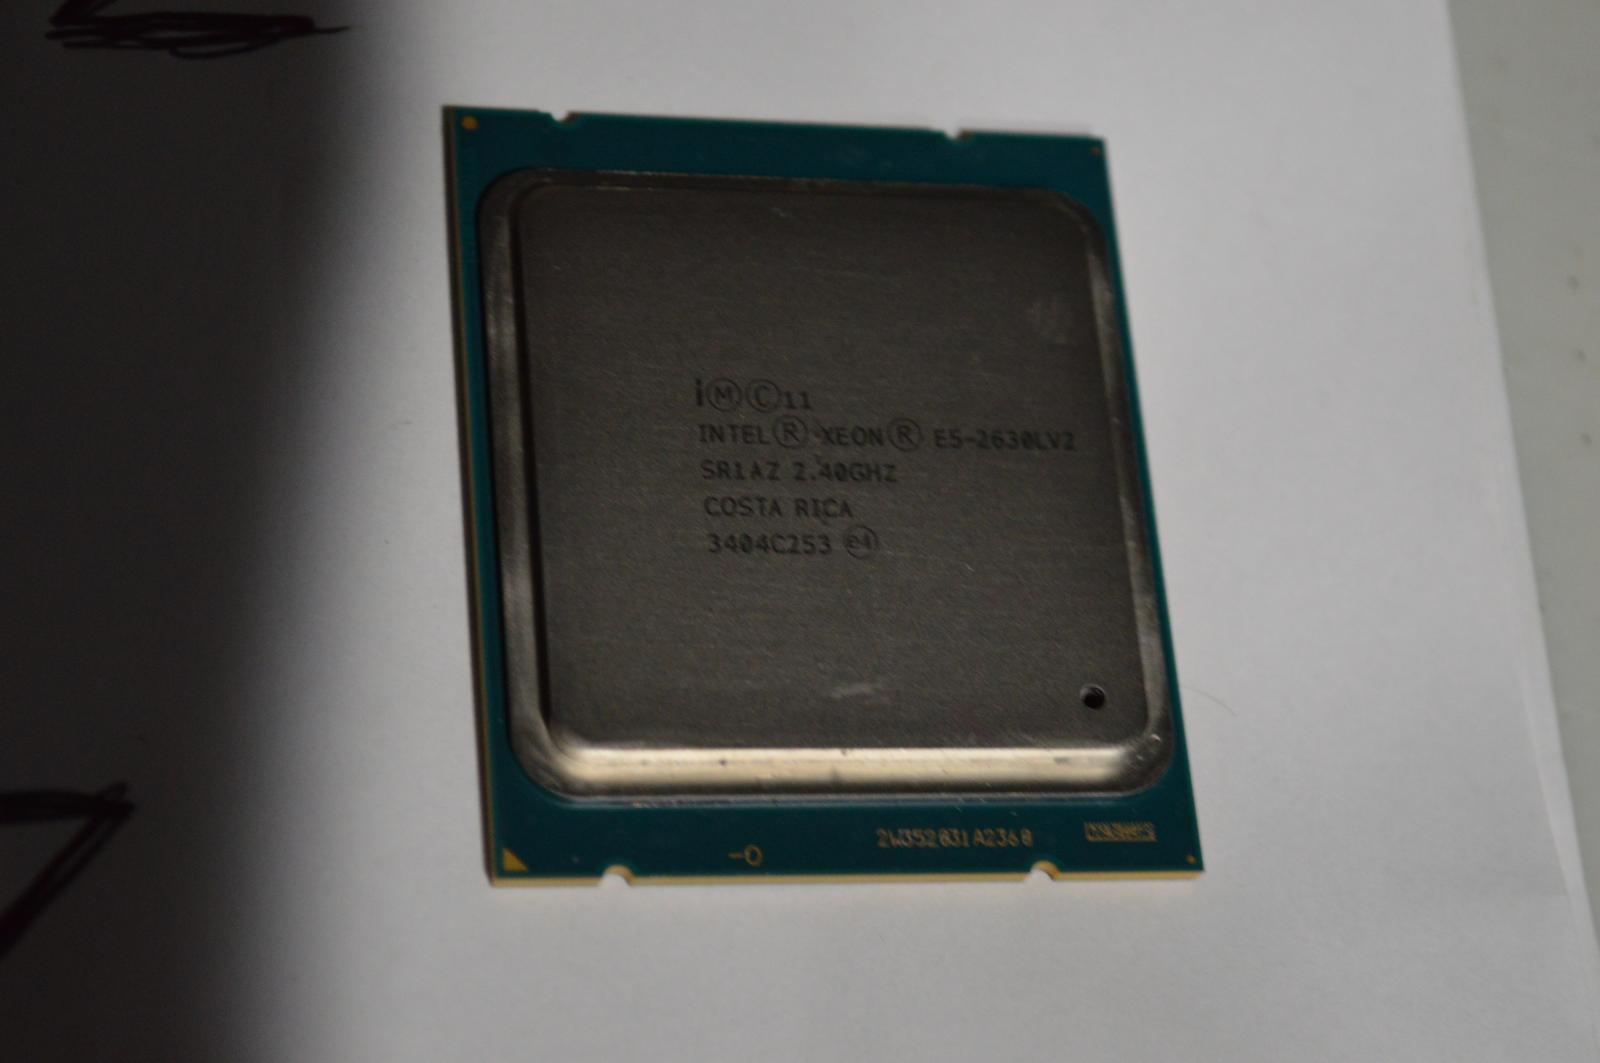 Image of item for sale